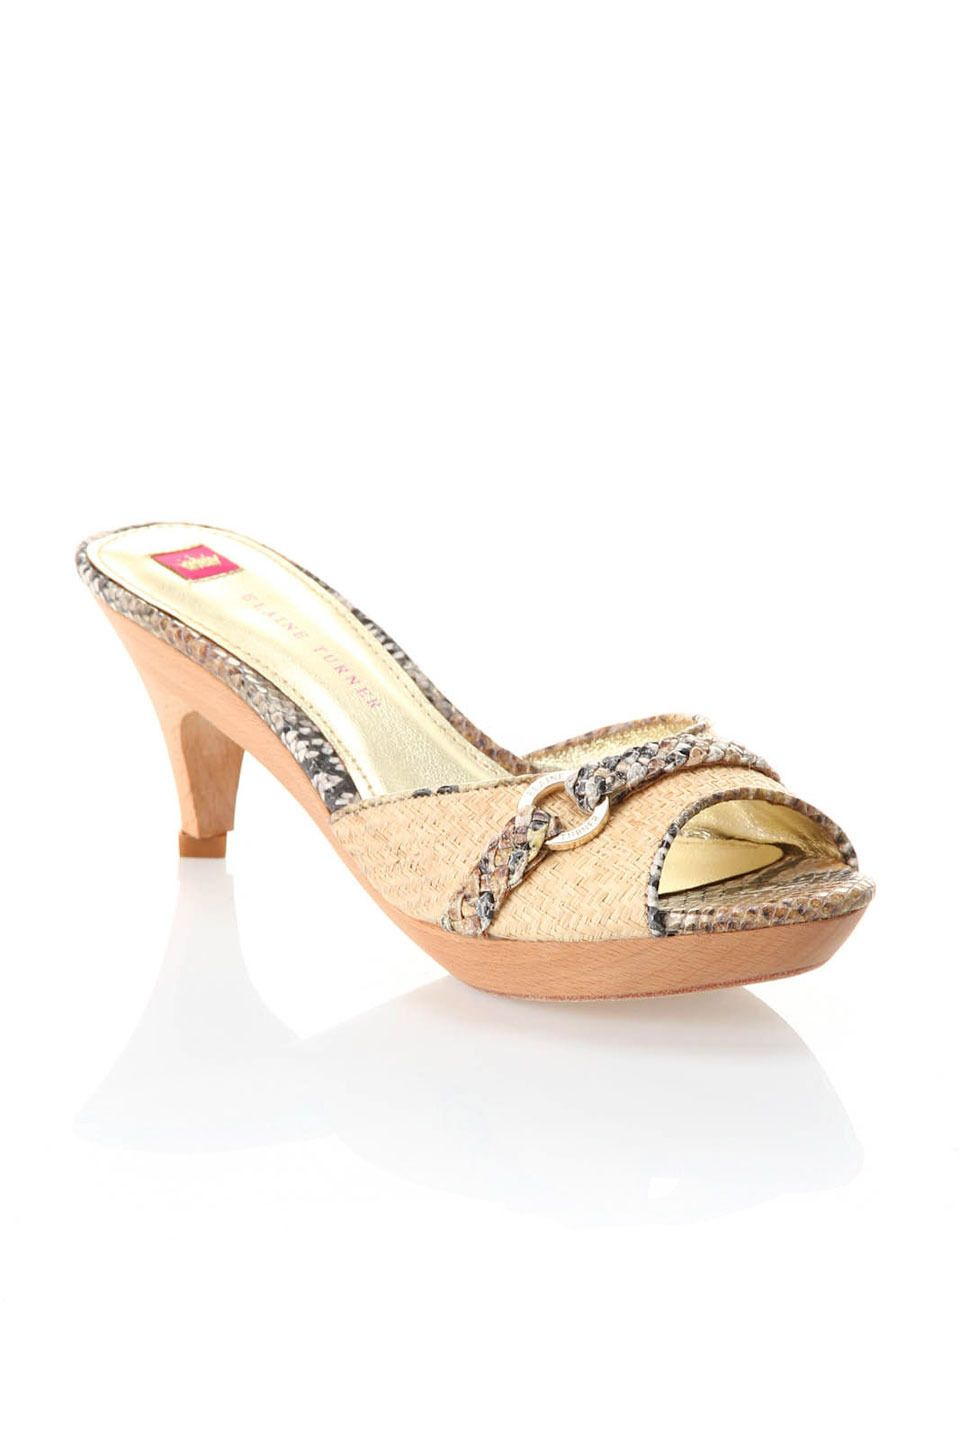 Elaine Turner Monica Pumps In Natural Raffia And Golden Python Me Too Shoes Shoes Heels